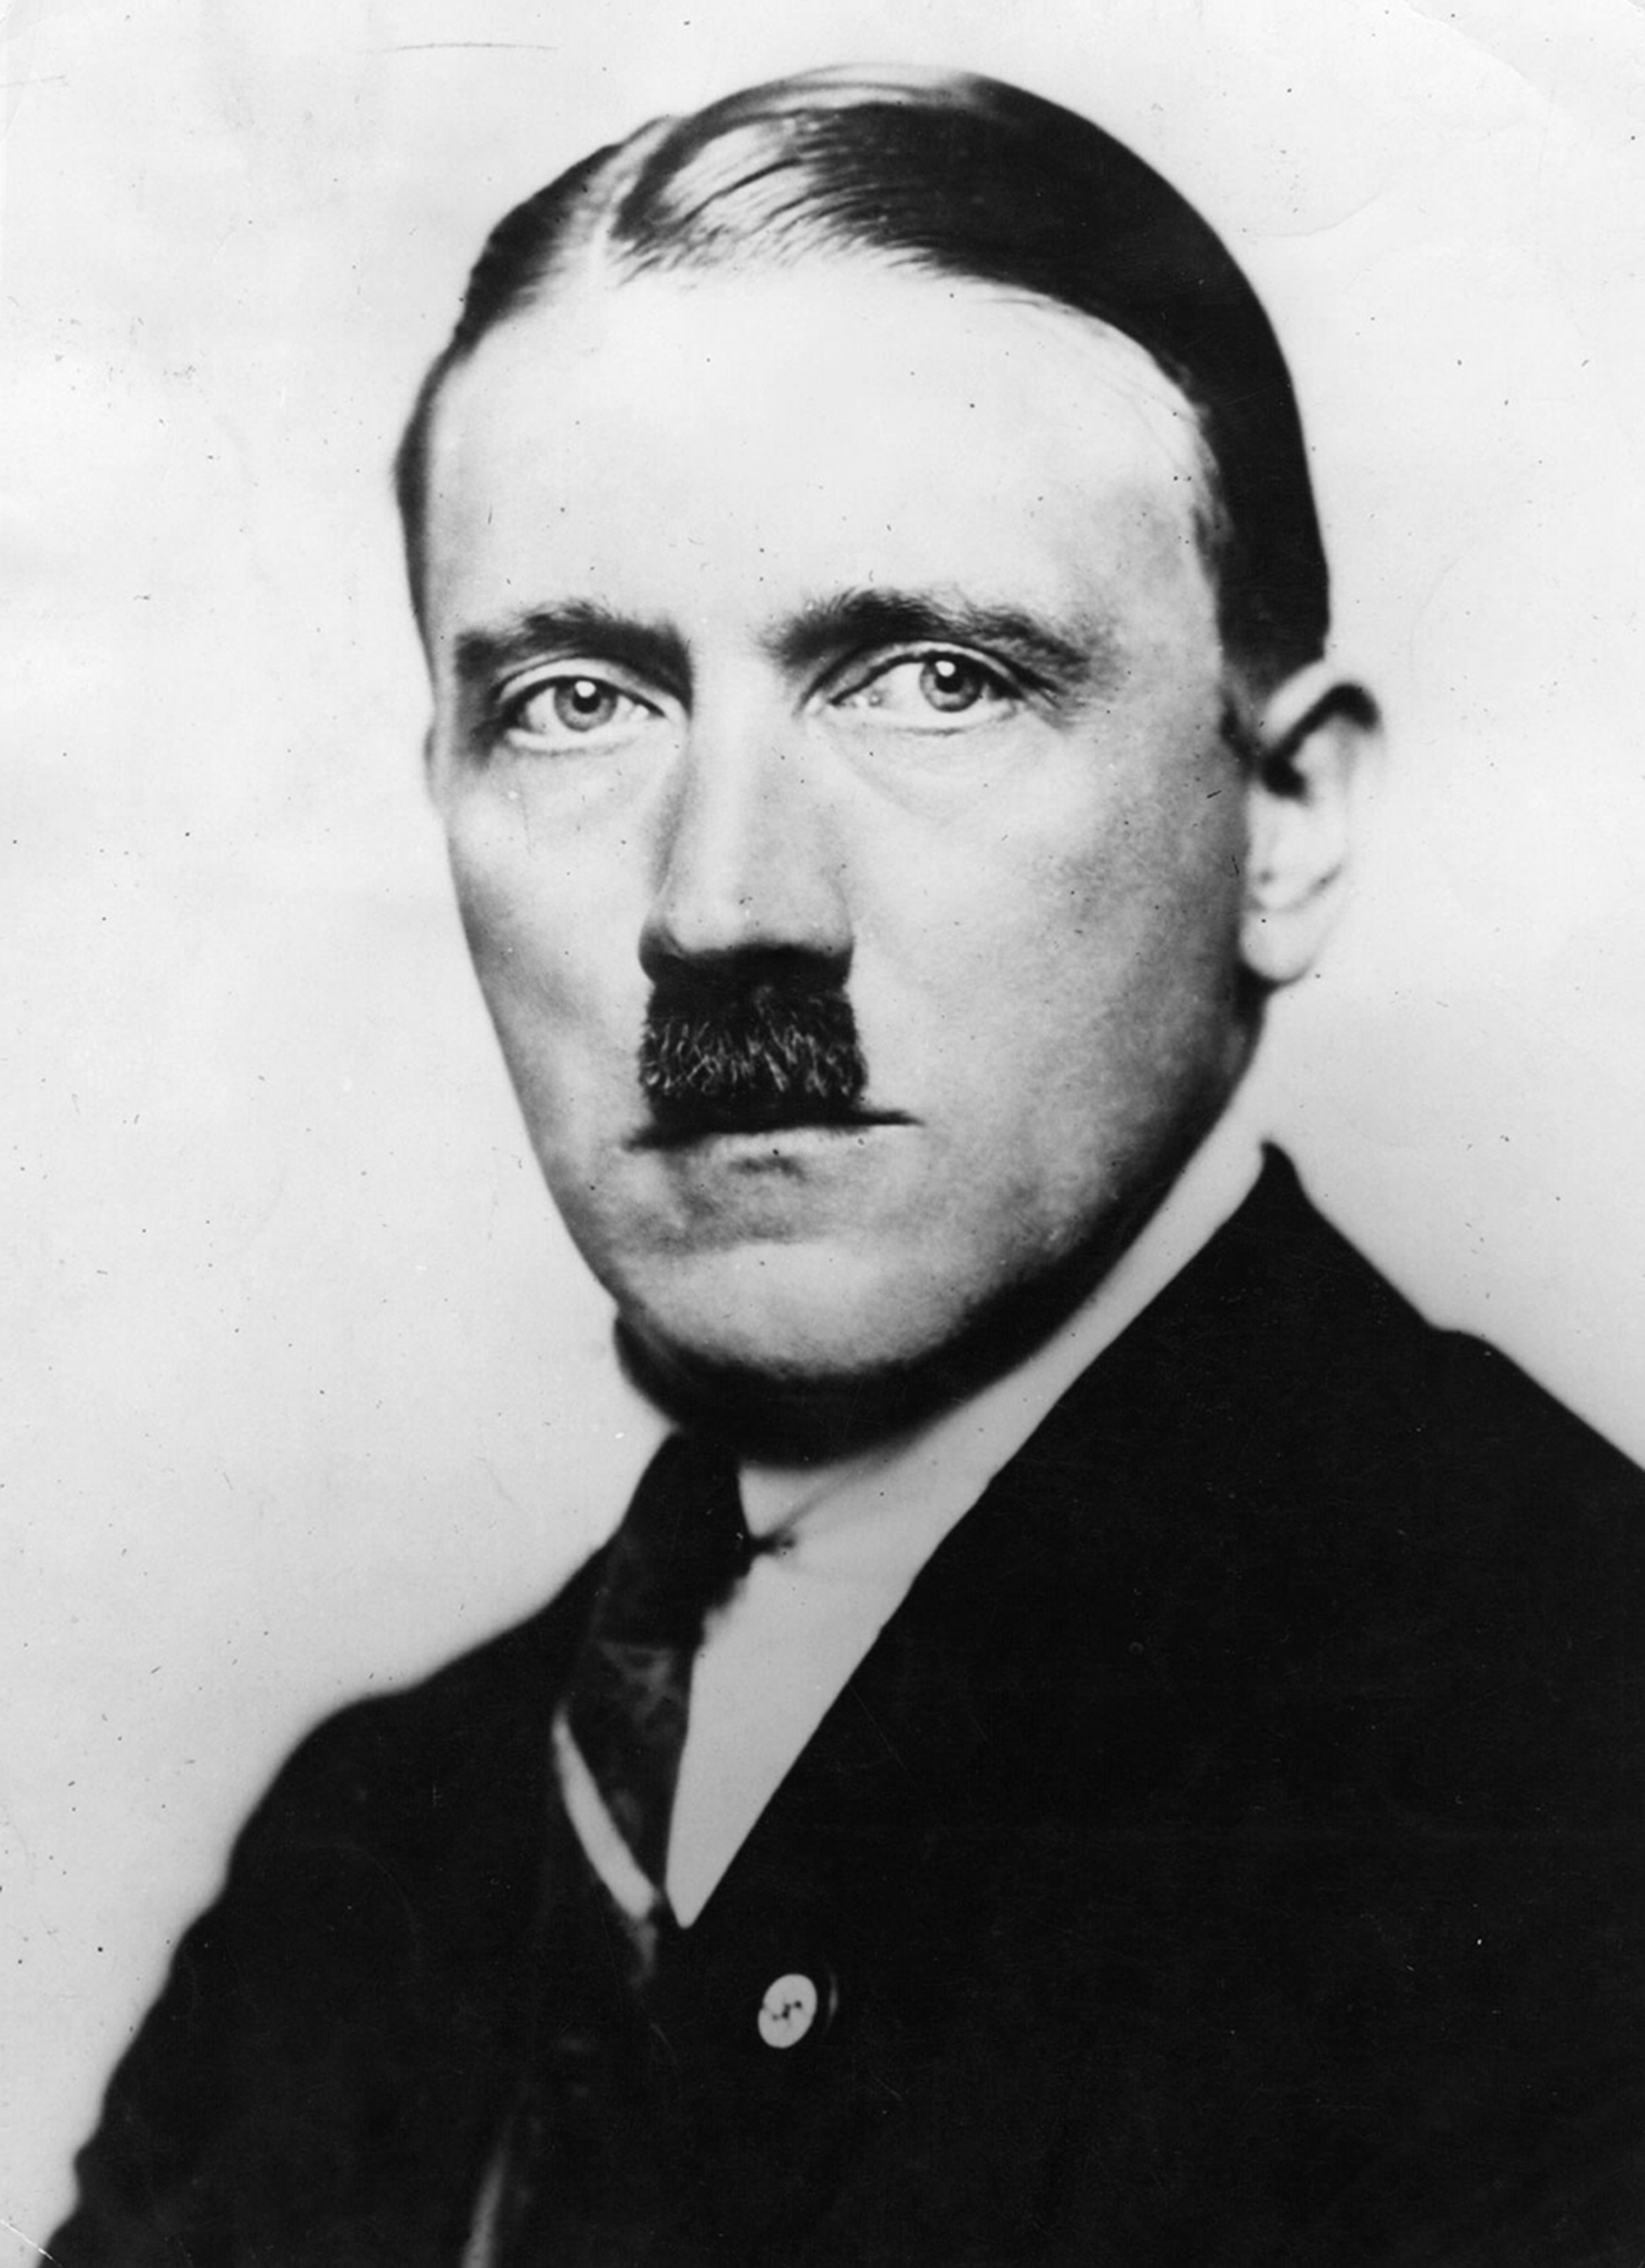 hitler speech style A military leadership analysis of adolf hitler a research paper presented to schedule his speeches late in the evening when his audience would be tired.